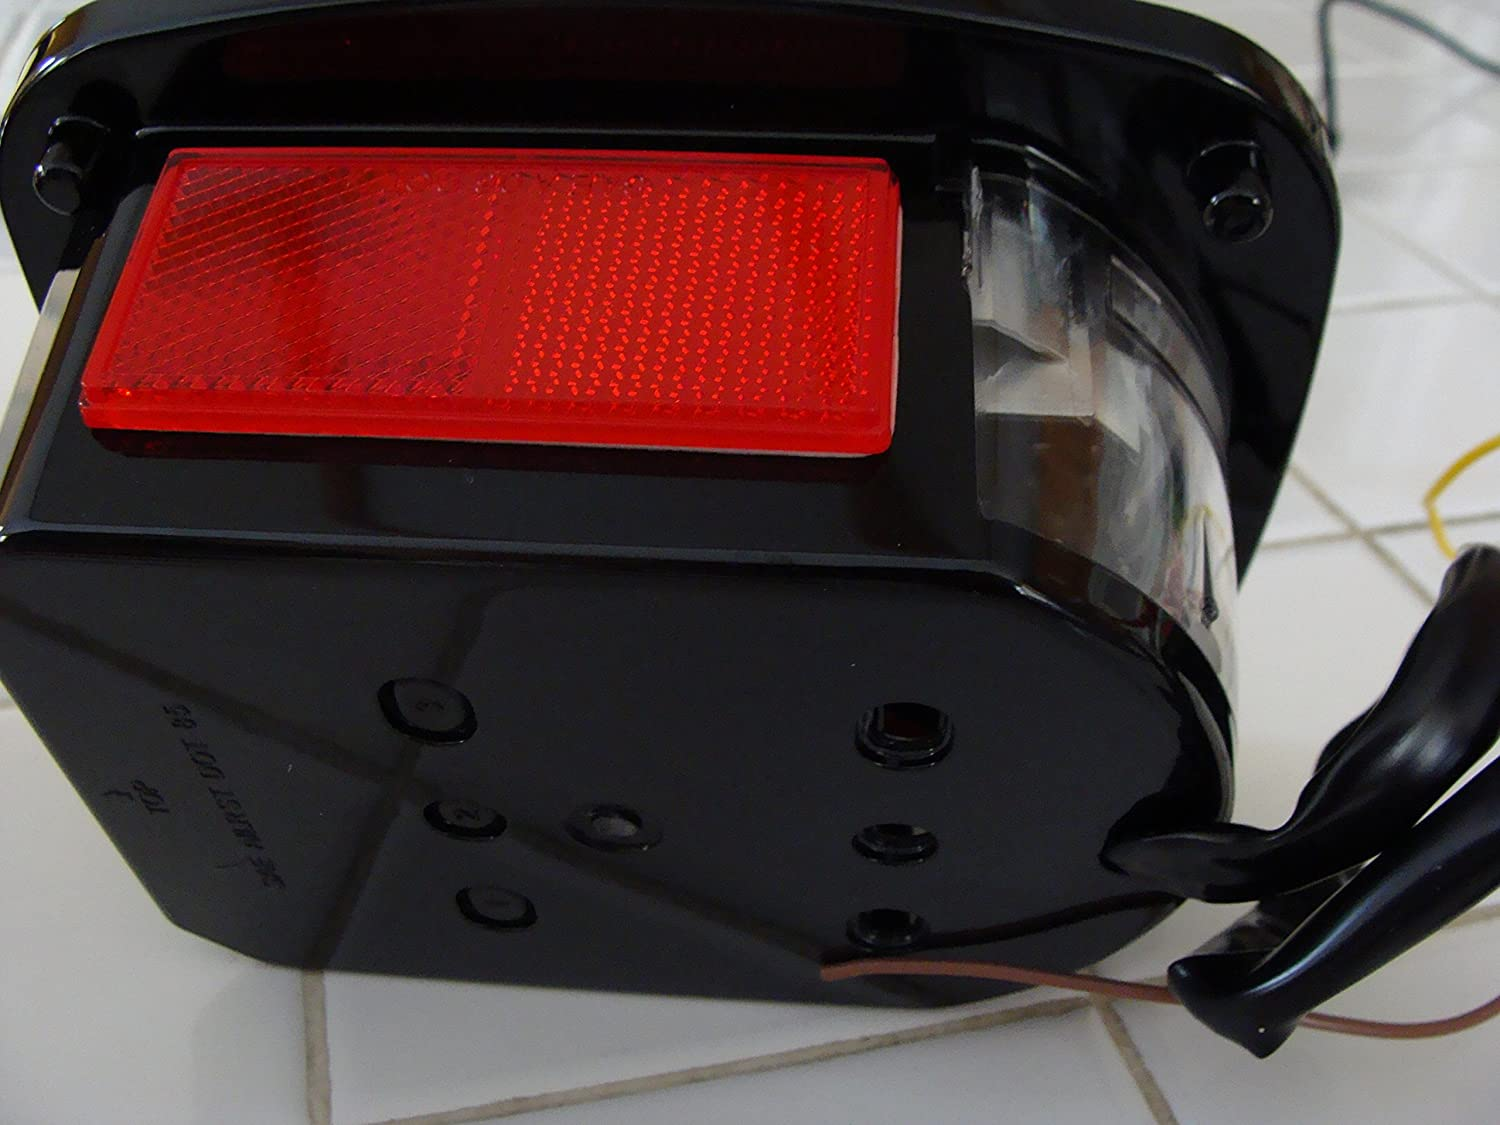 Jeep Tj Cj Yj Replacement Tail Lights W Bright Red Leds 89 Light Wiring Diagram Automotive